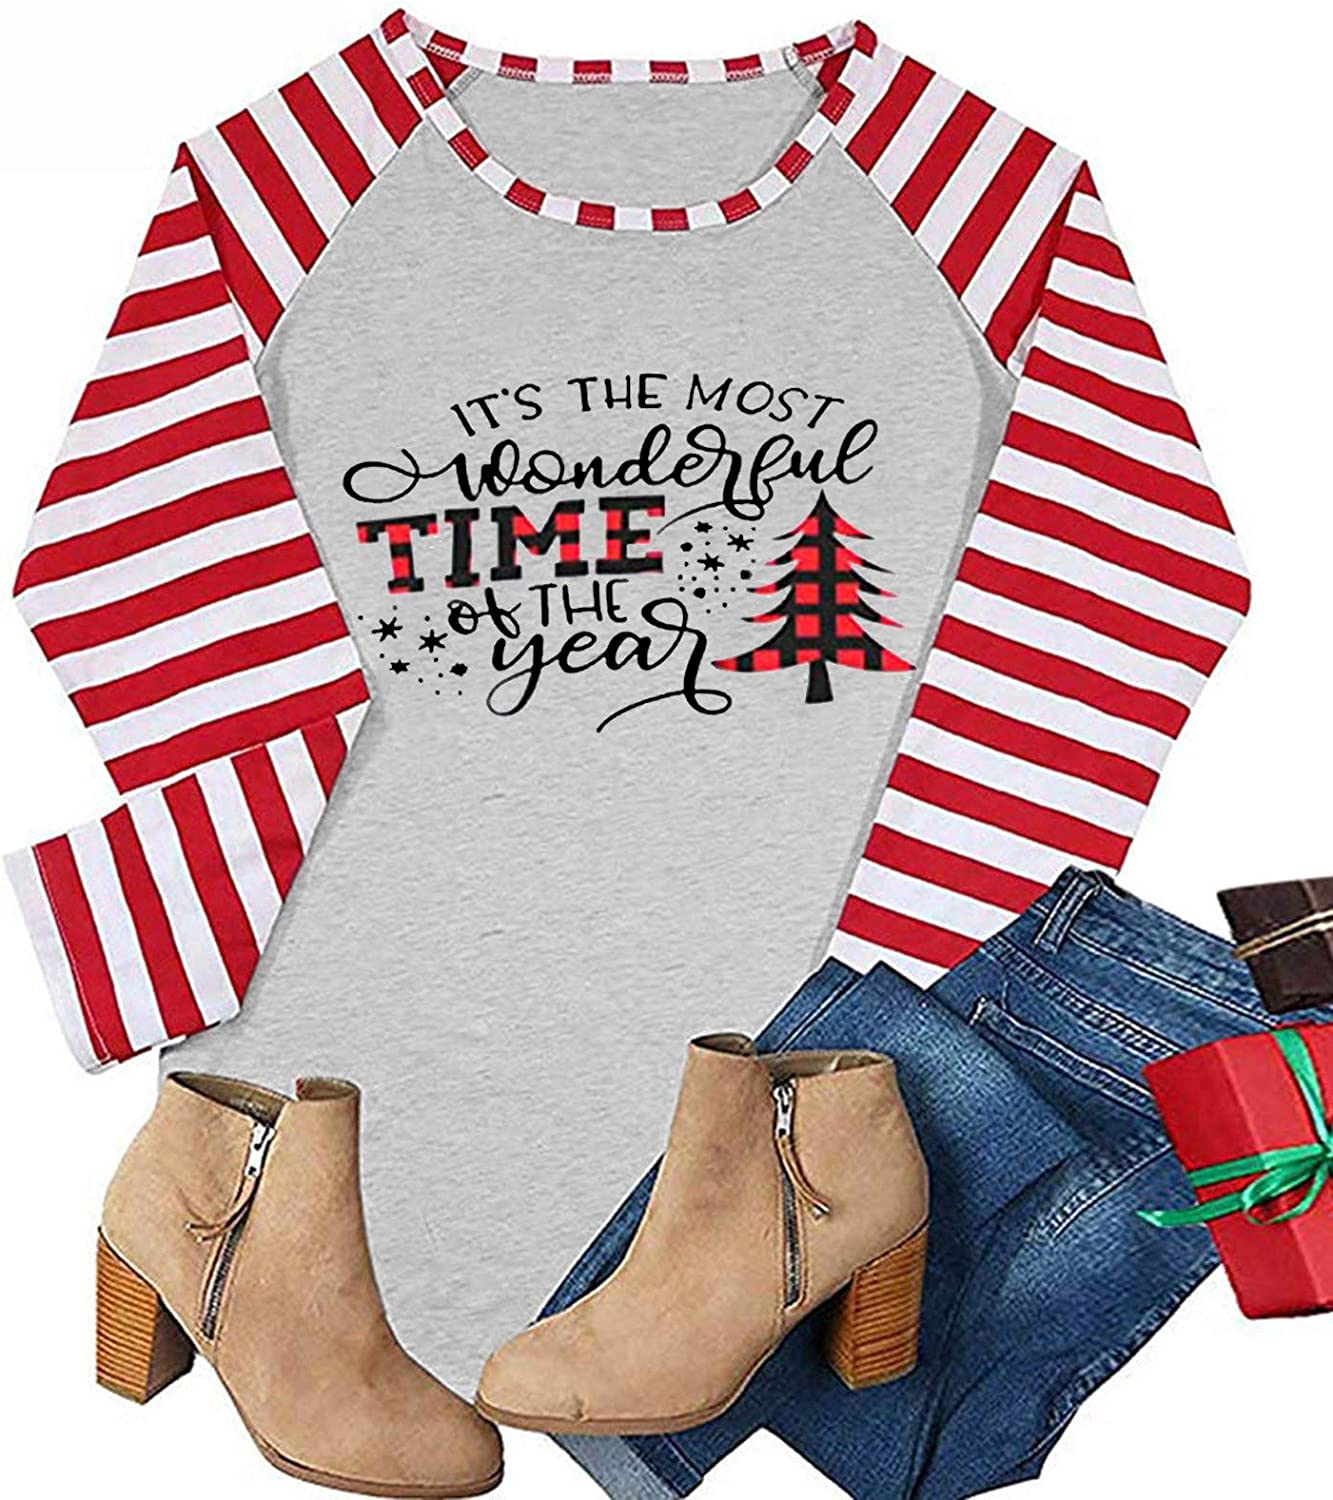 Kethorina Its The Most Wonderful Time Shirt T Women Outlet Wholesale sale feature Pla Year